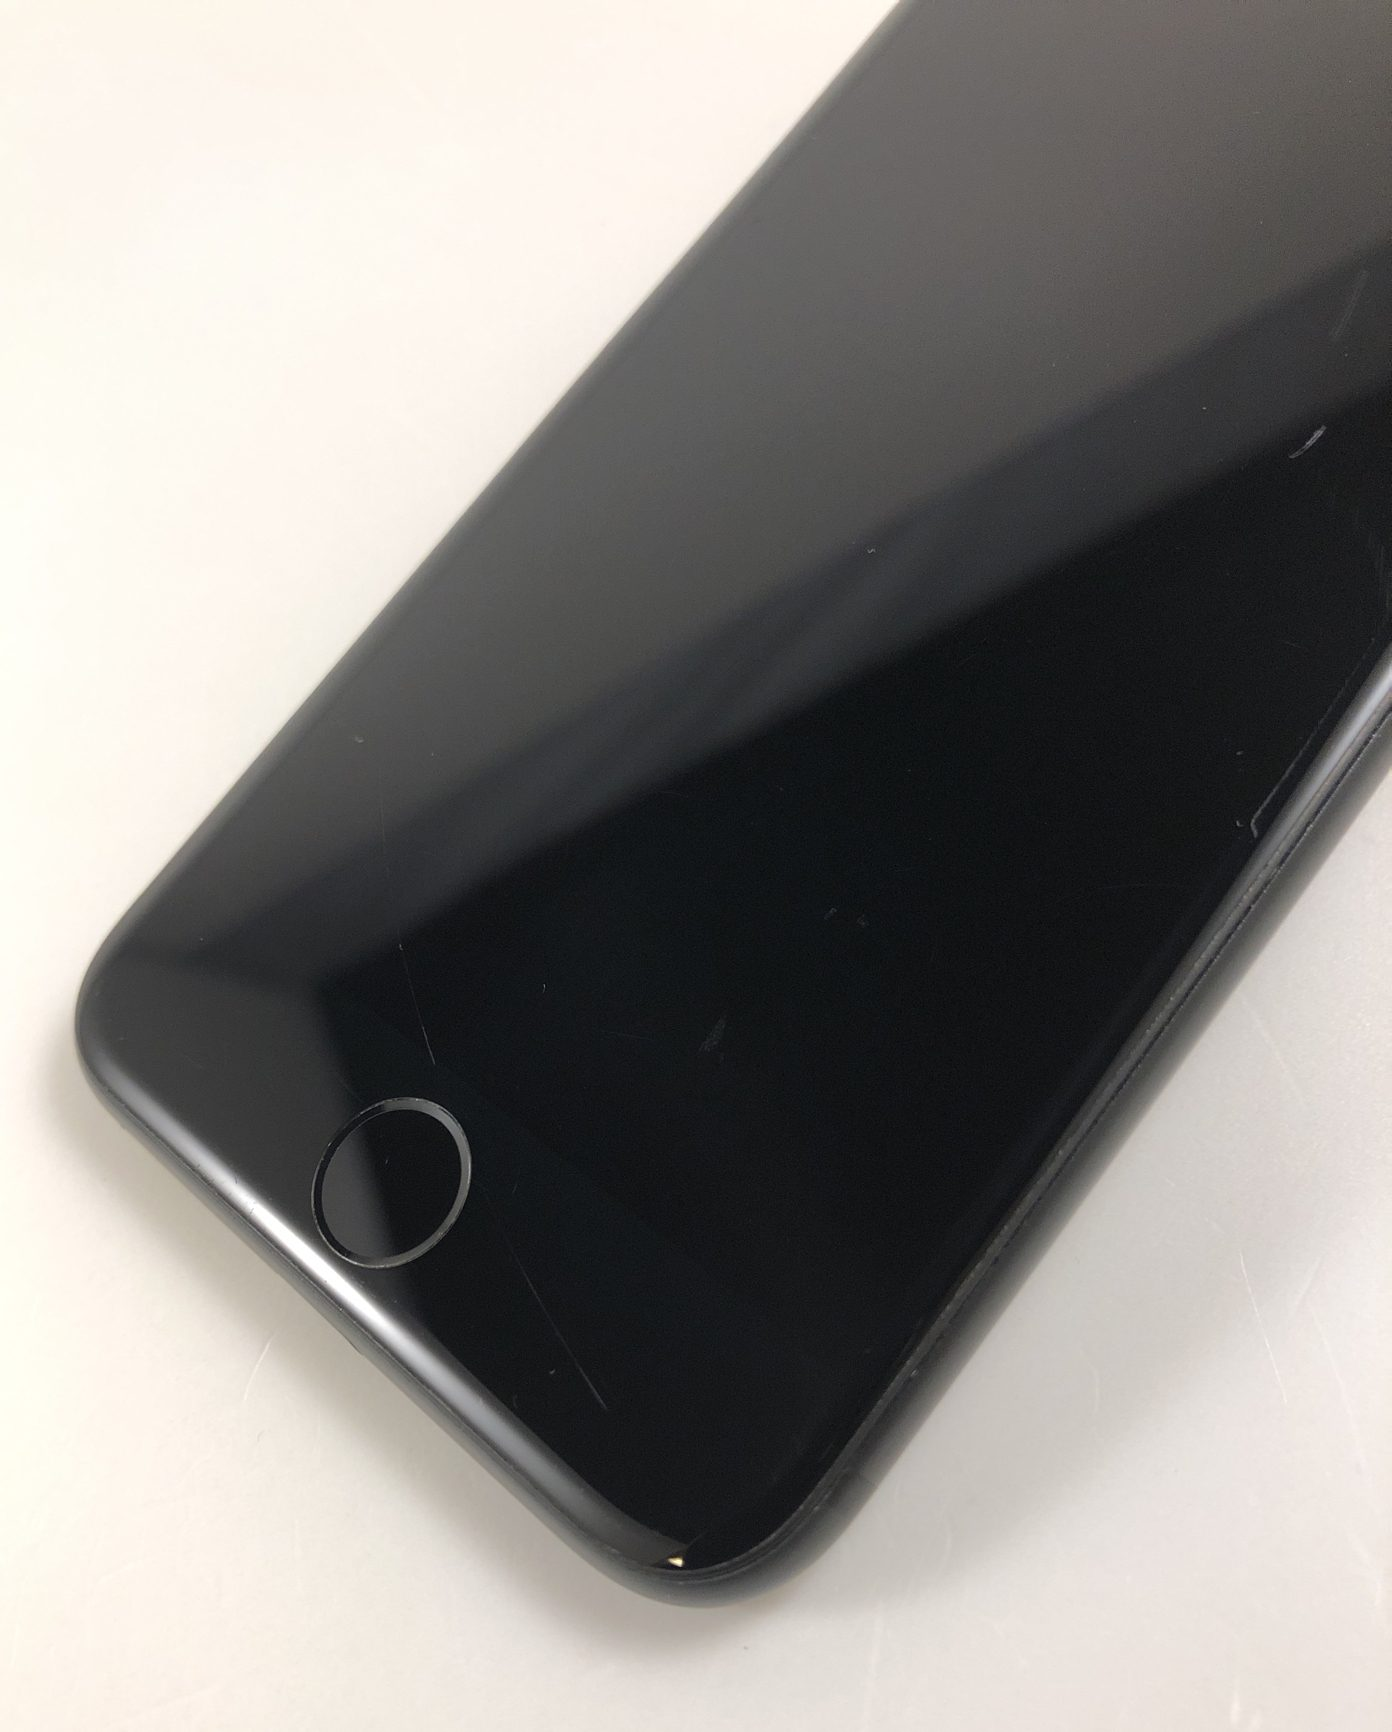 iPhone 7 32GB, 32GB, Black, immagine 4